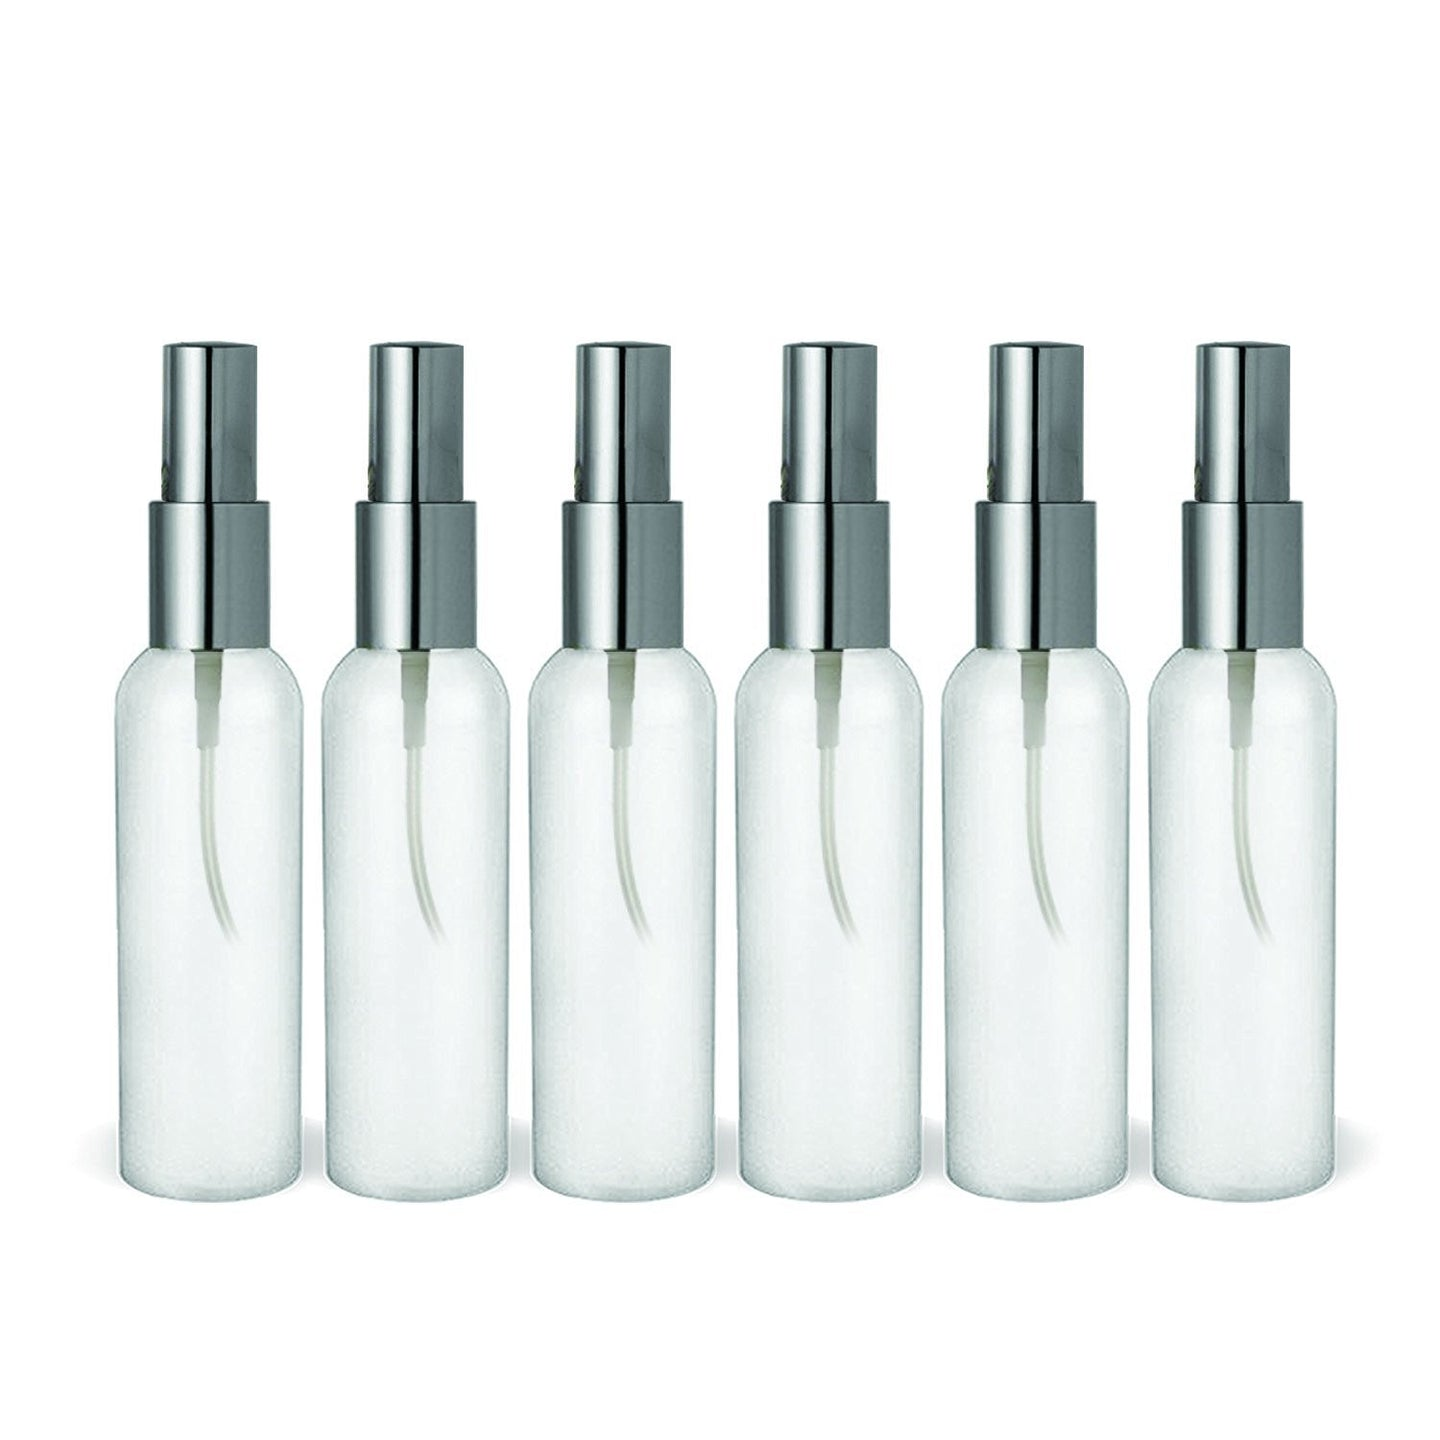 2 Oz Mini Bullet style HDPE Mist Spray Atomizer Bottles TSA Approved and BPA Free - 6 Pack